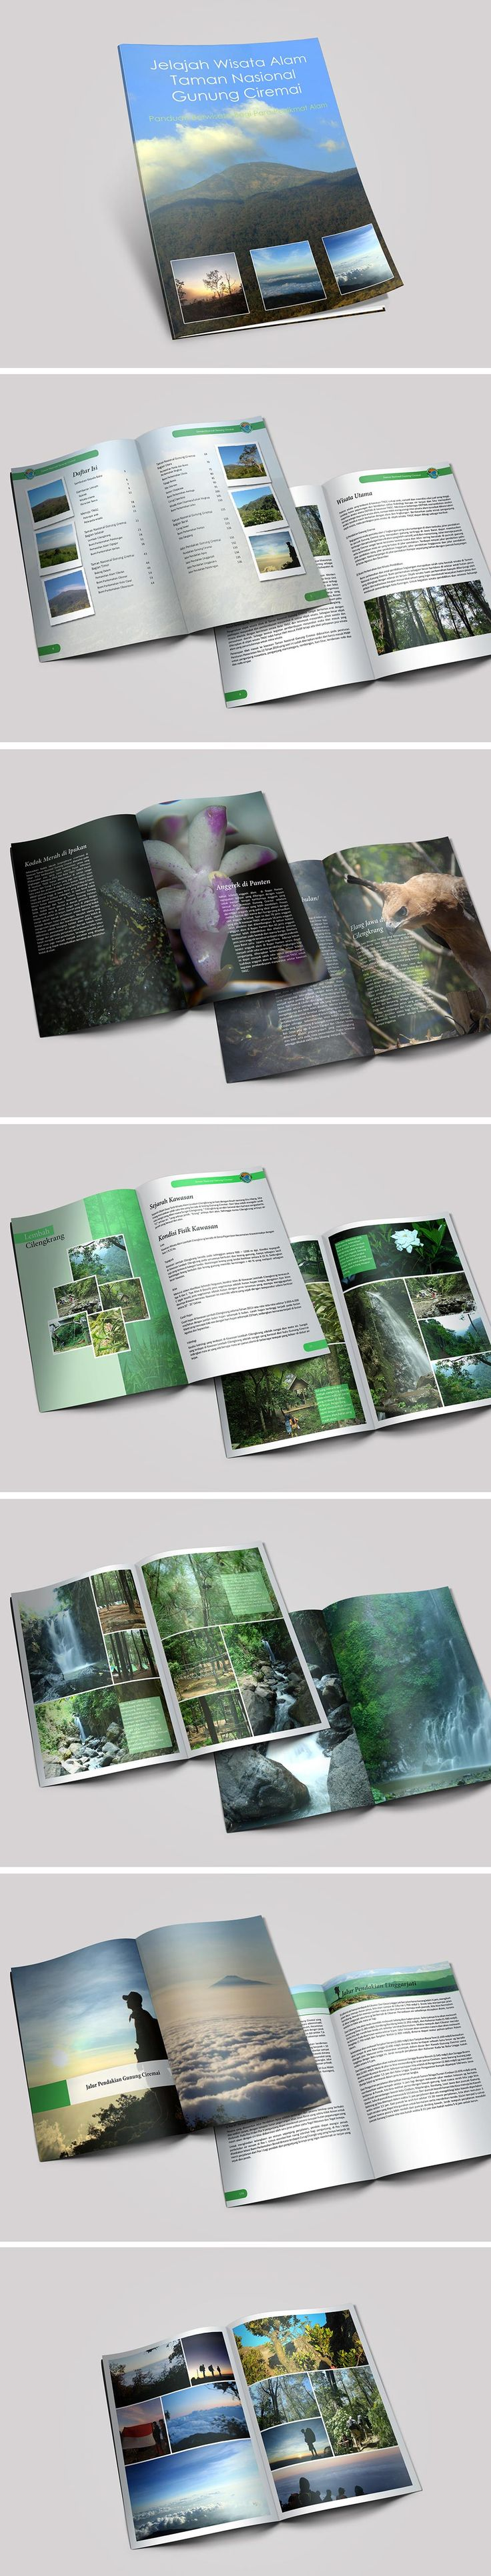 Photo book/travel book layout   Visit my gig on fiverr https://www.fiverr.com/cilok if you want to order book/ebook layout or email me at gian@tikukur13.com